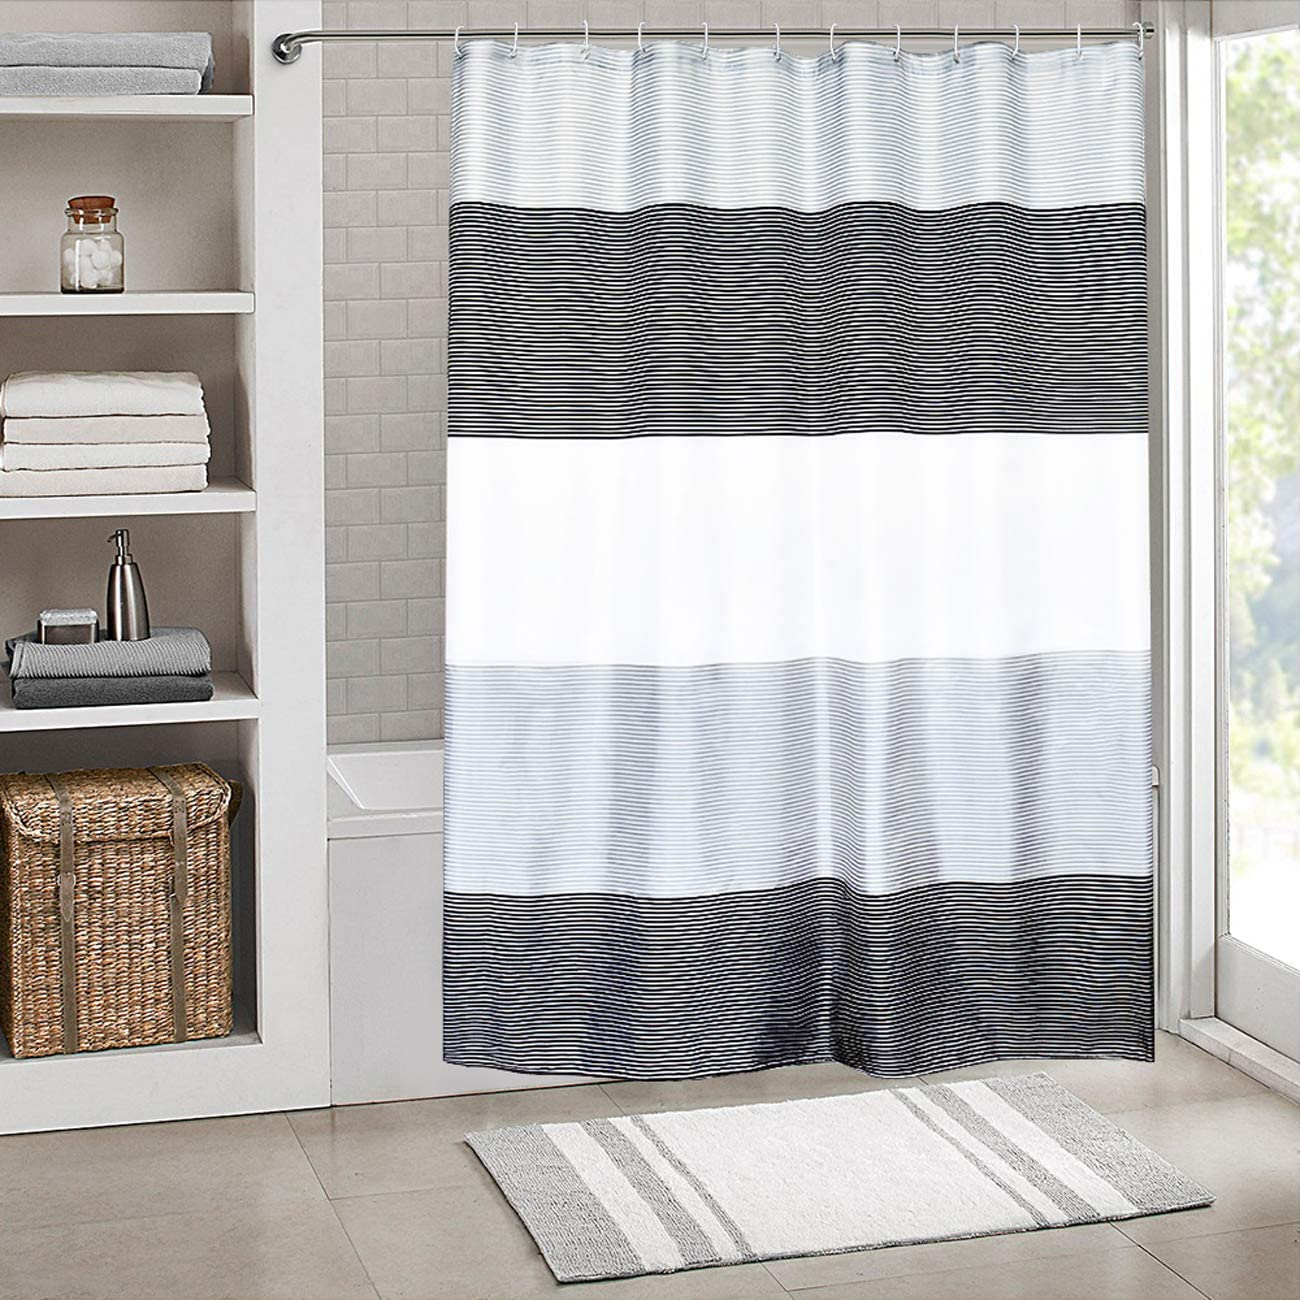 """SHES HOME Shower Curtain Set Waterproof,Stripes Polyester Fabric for  Bathroom Showers and Bathtubs,Grey & Black & White,4"""" W×4"""" L Size"""